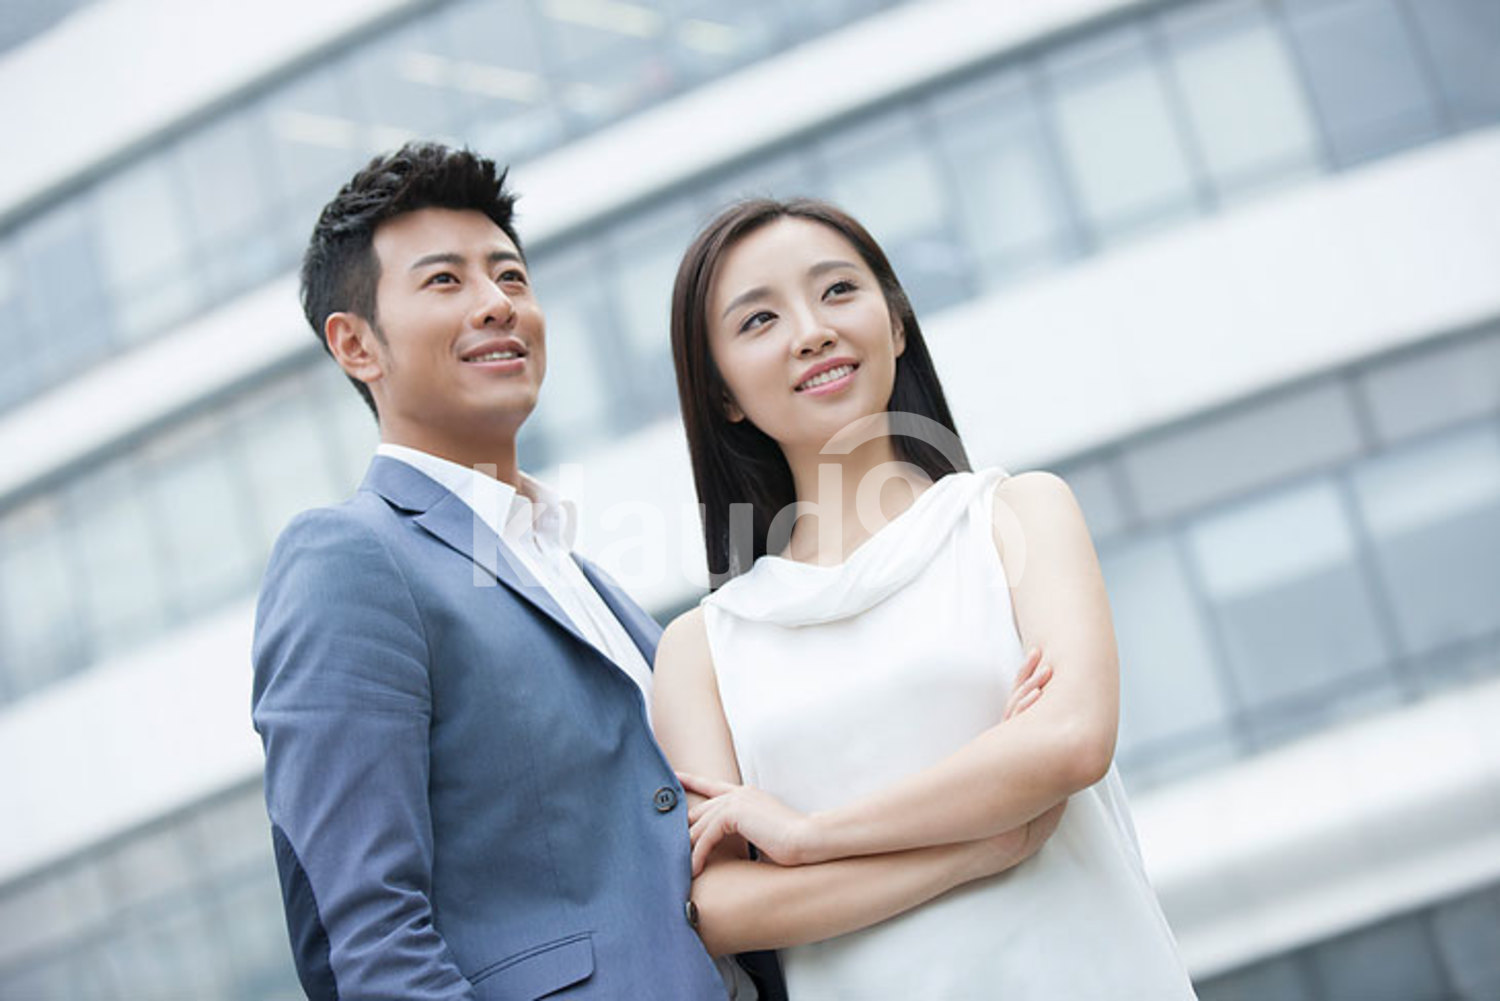 Confident Chinese businesspeople